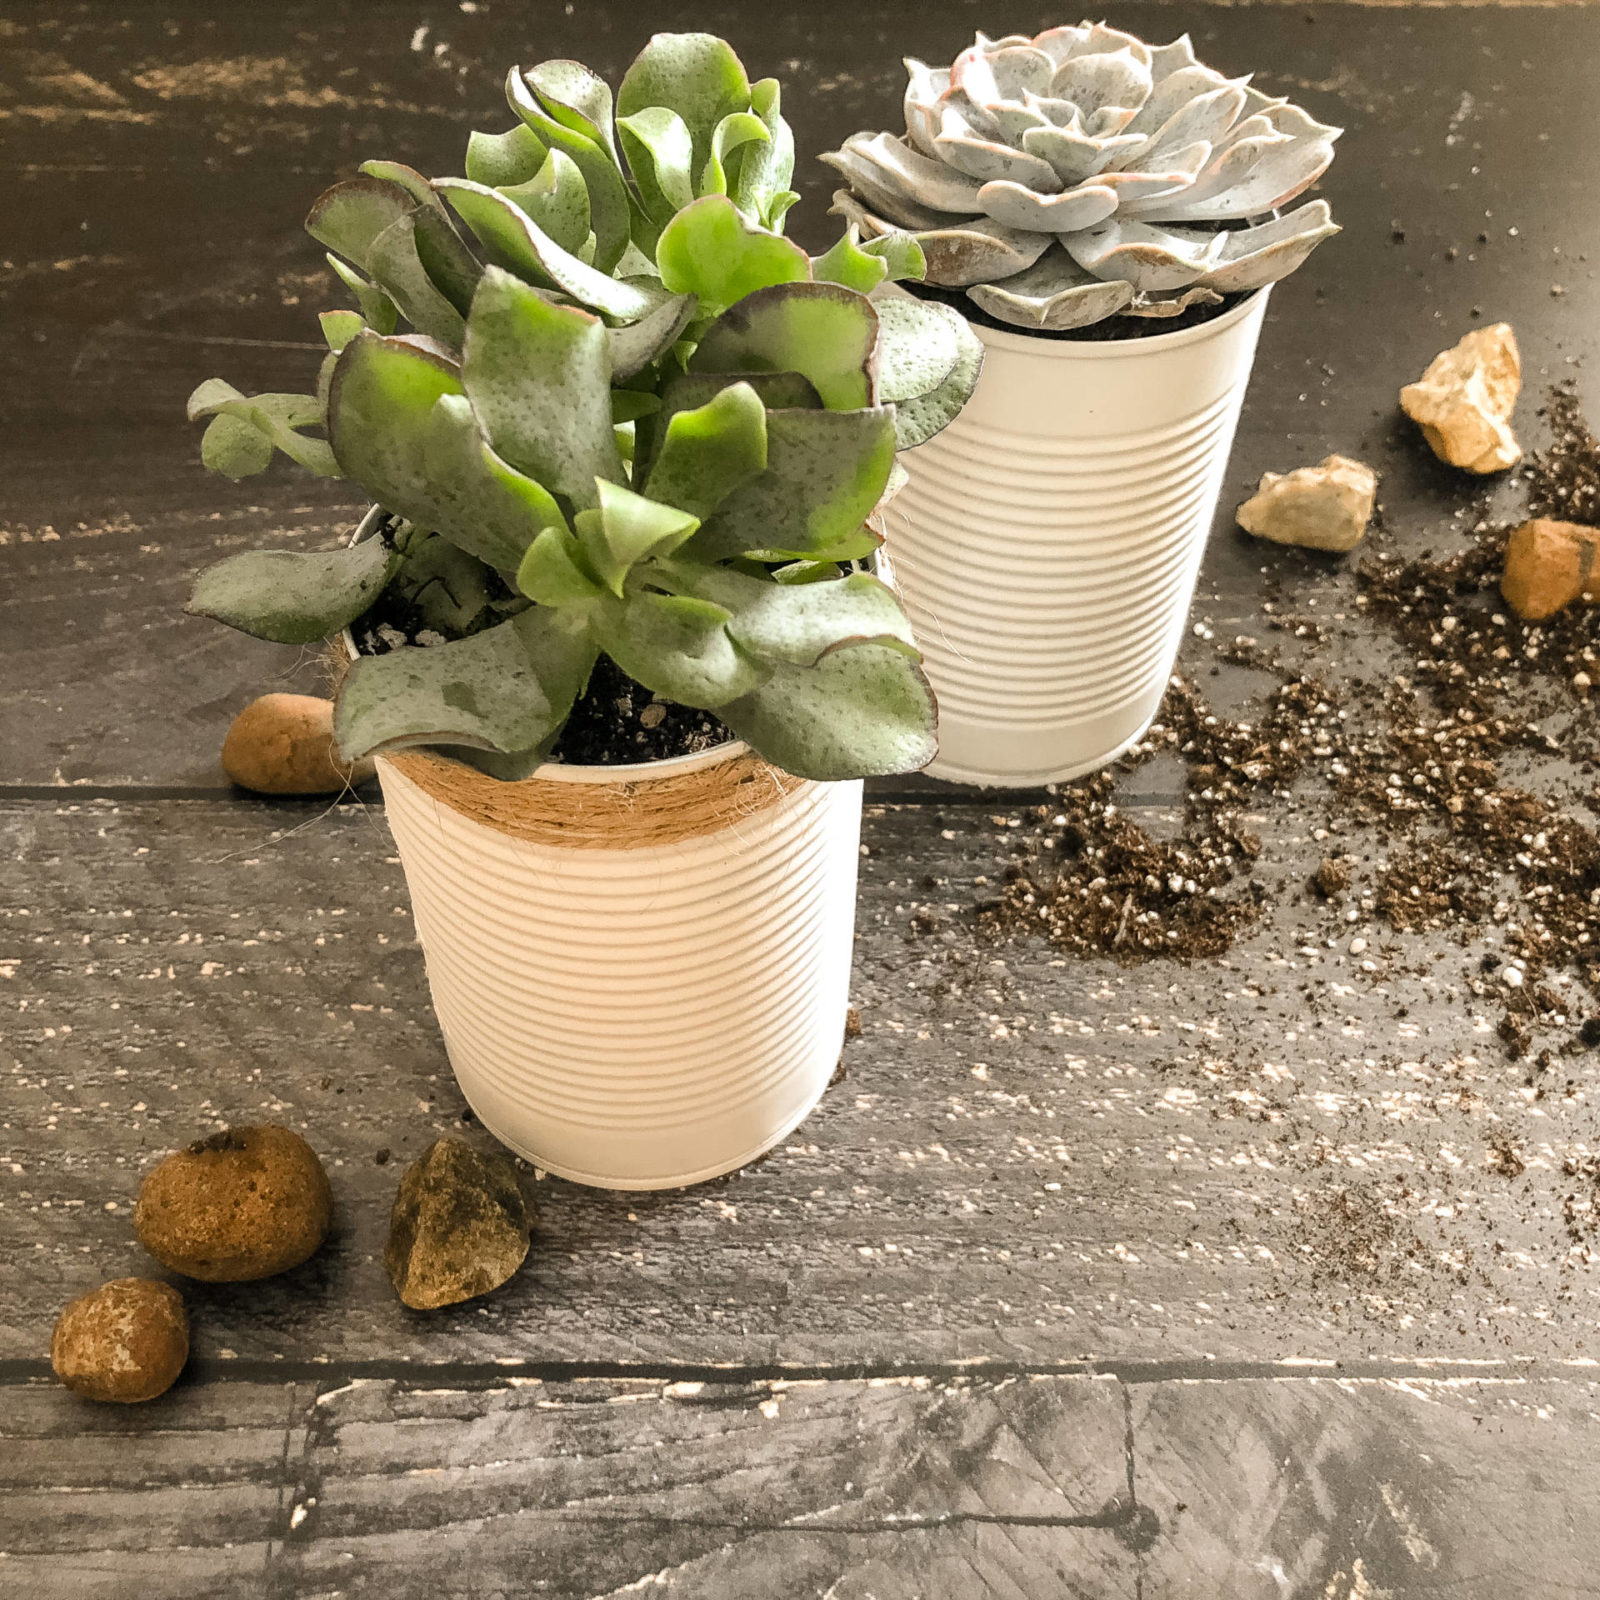 How To Make Upcycled Tin Can Planters